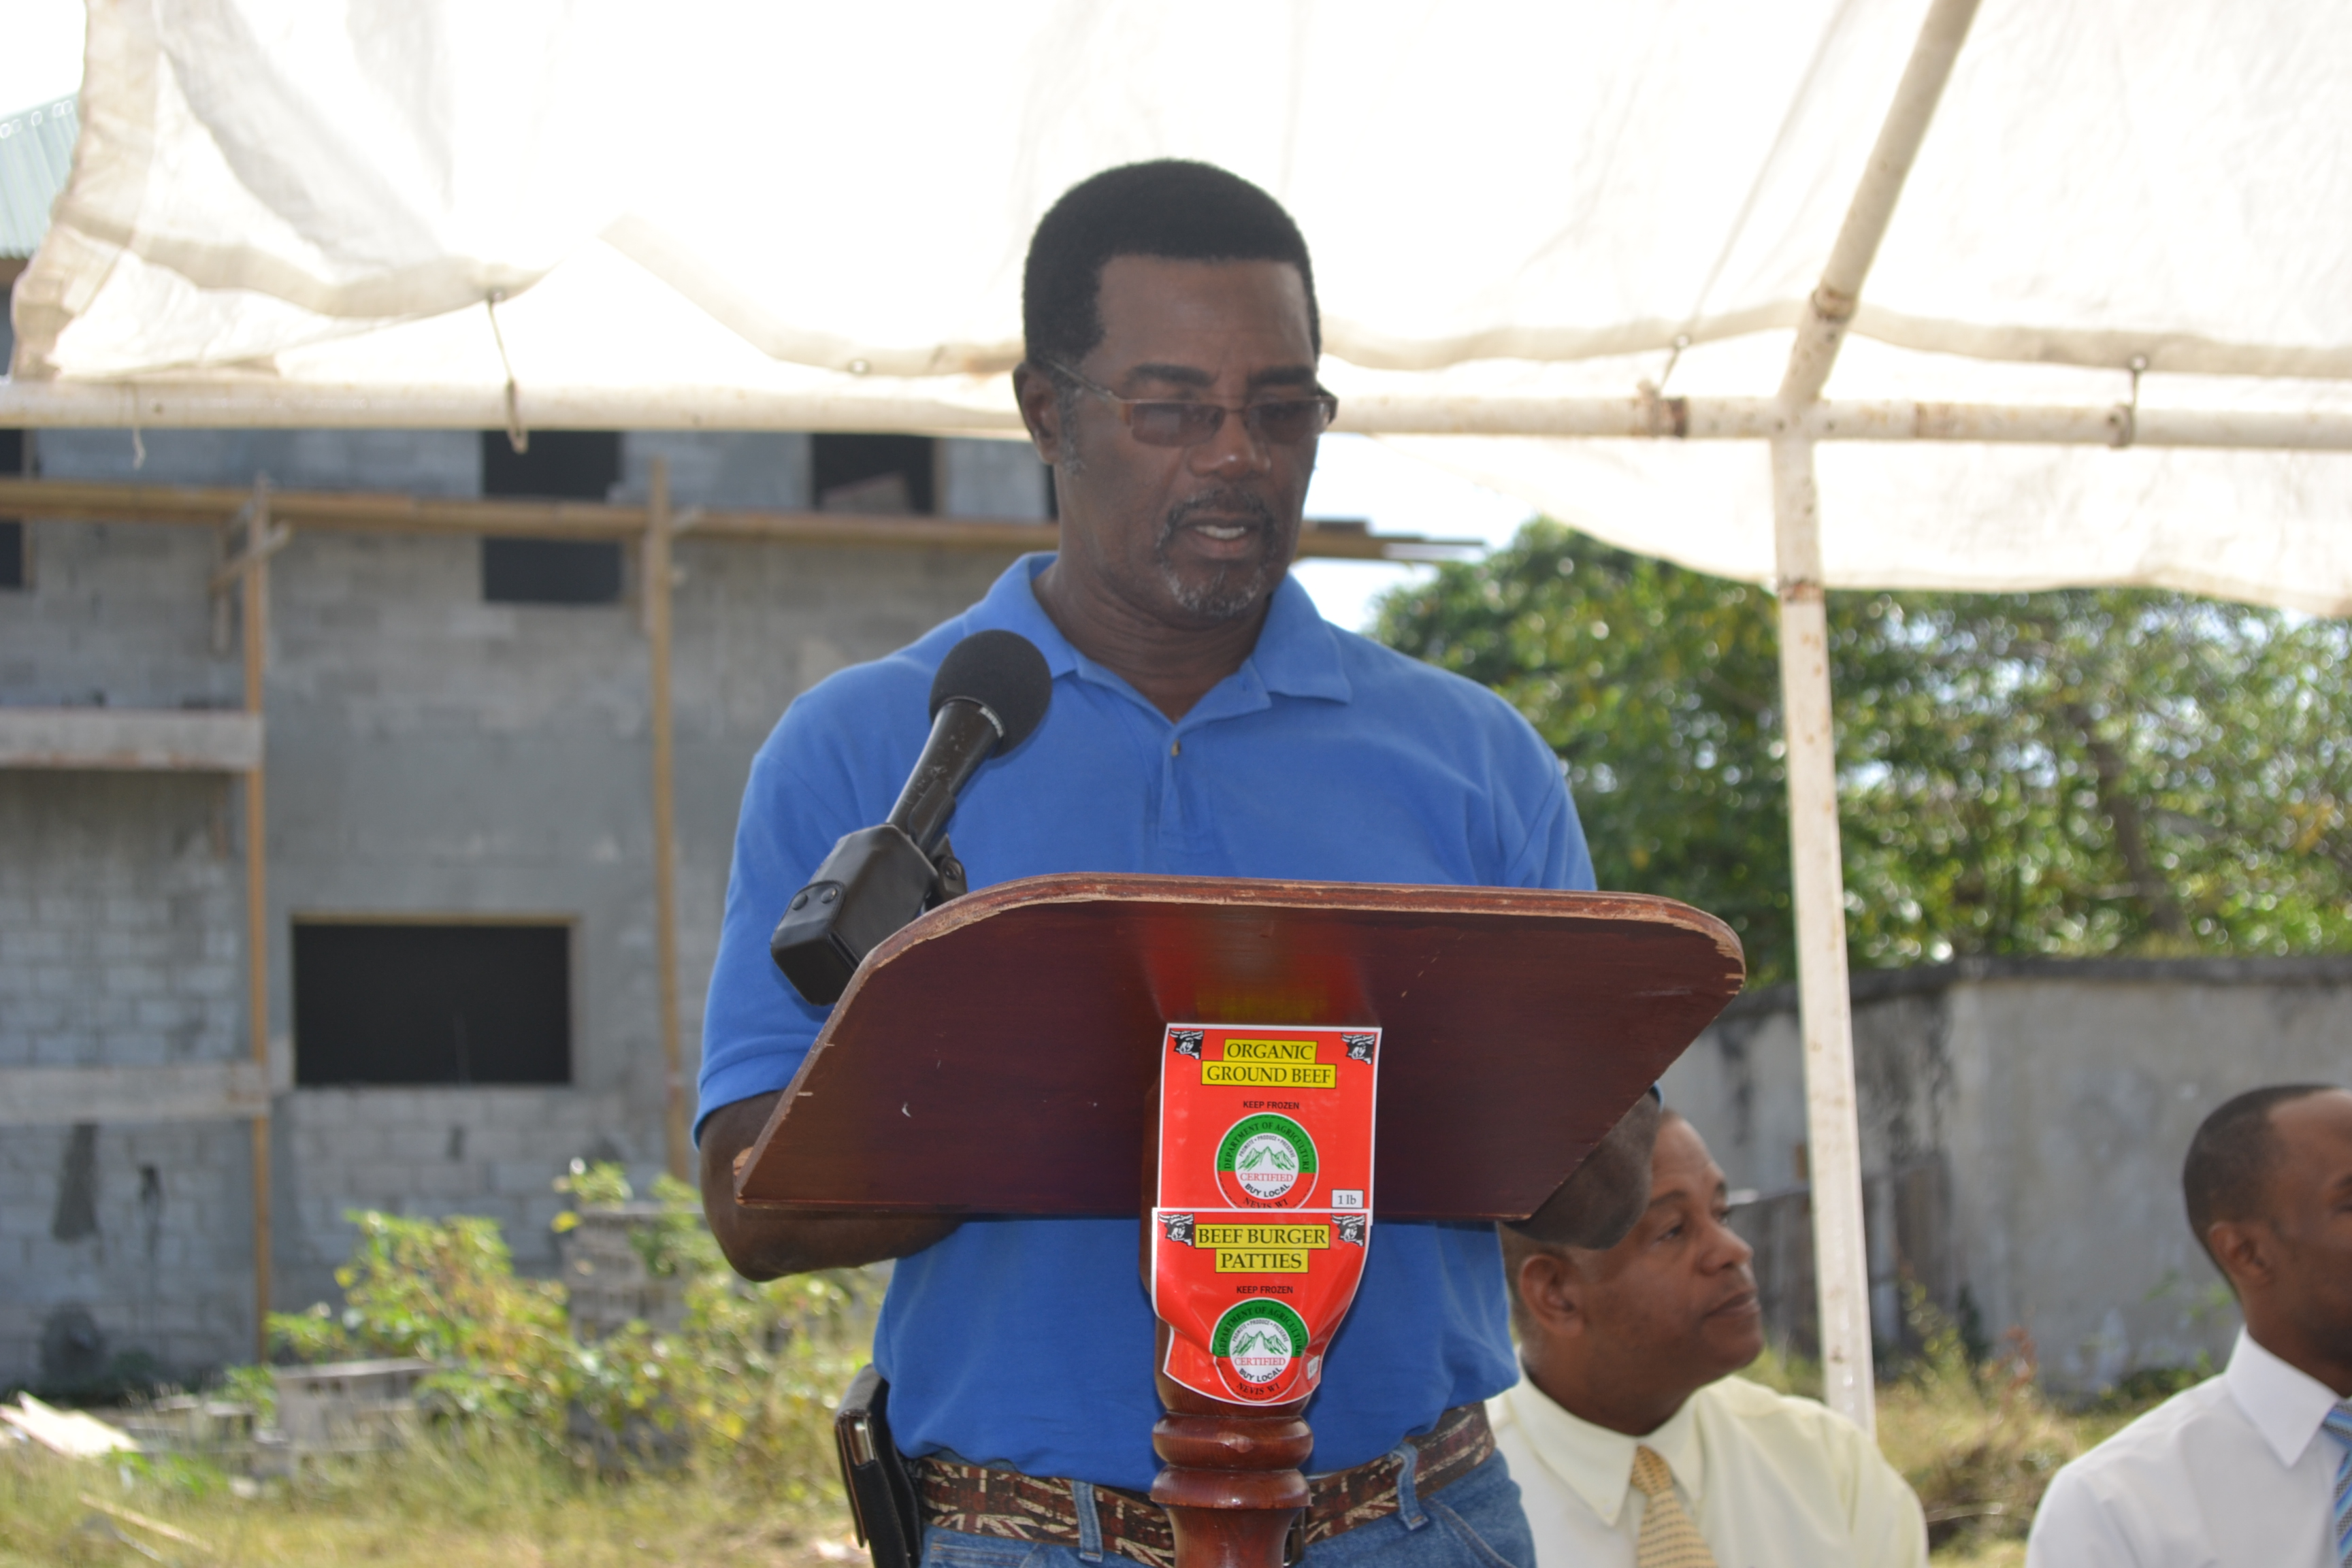 Mr. Edmund Jeffers Contractor for Nevis Housing and Land Development Corporation for Abattoir Extension giving an overview of the project at the Ground Breaking Ceremony for the extension of the Abattoir Division on the Abattoir Division Grounds on January 26 2016